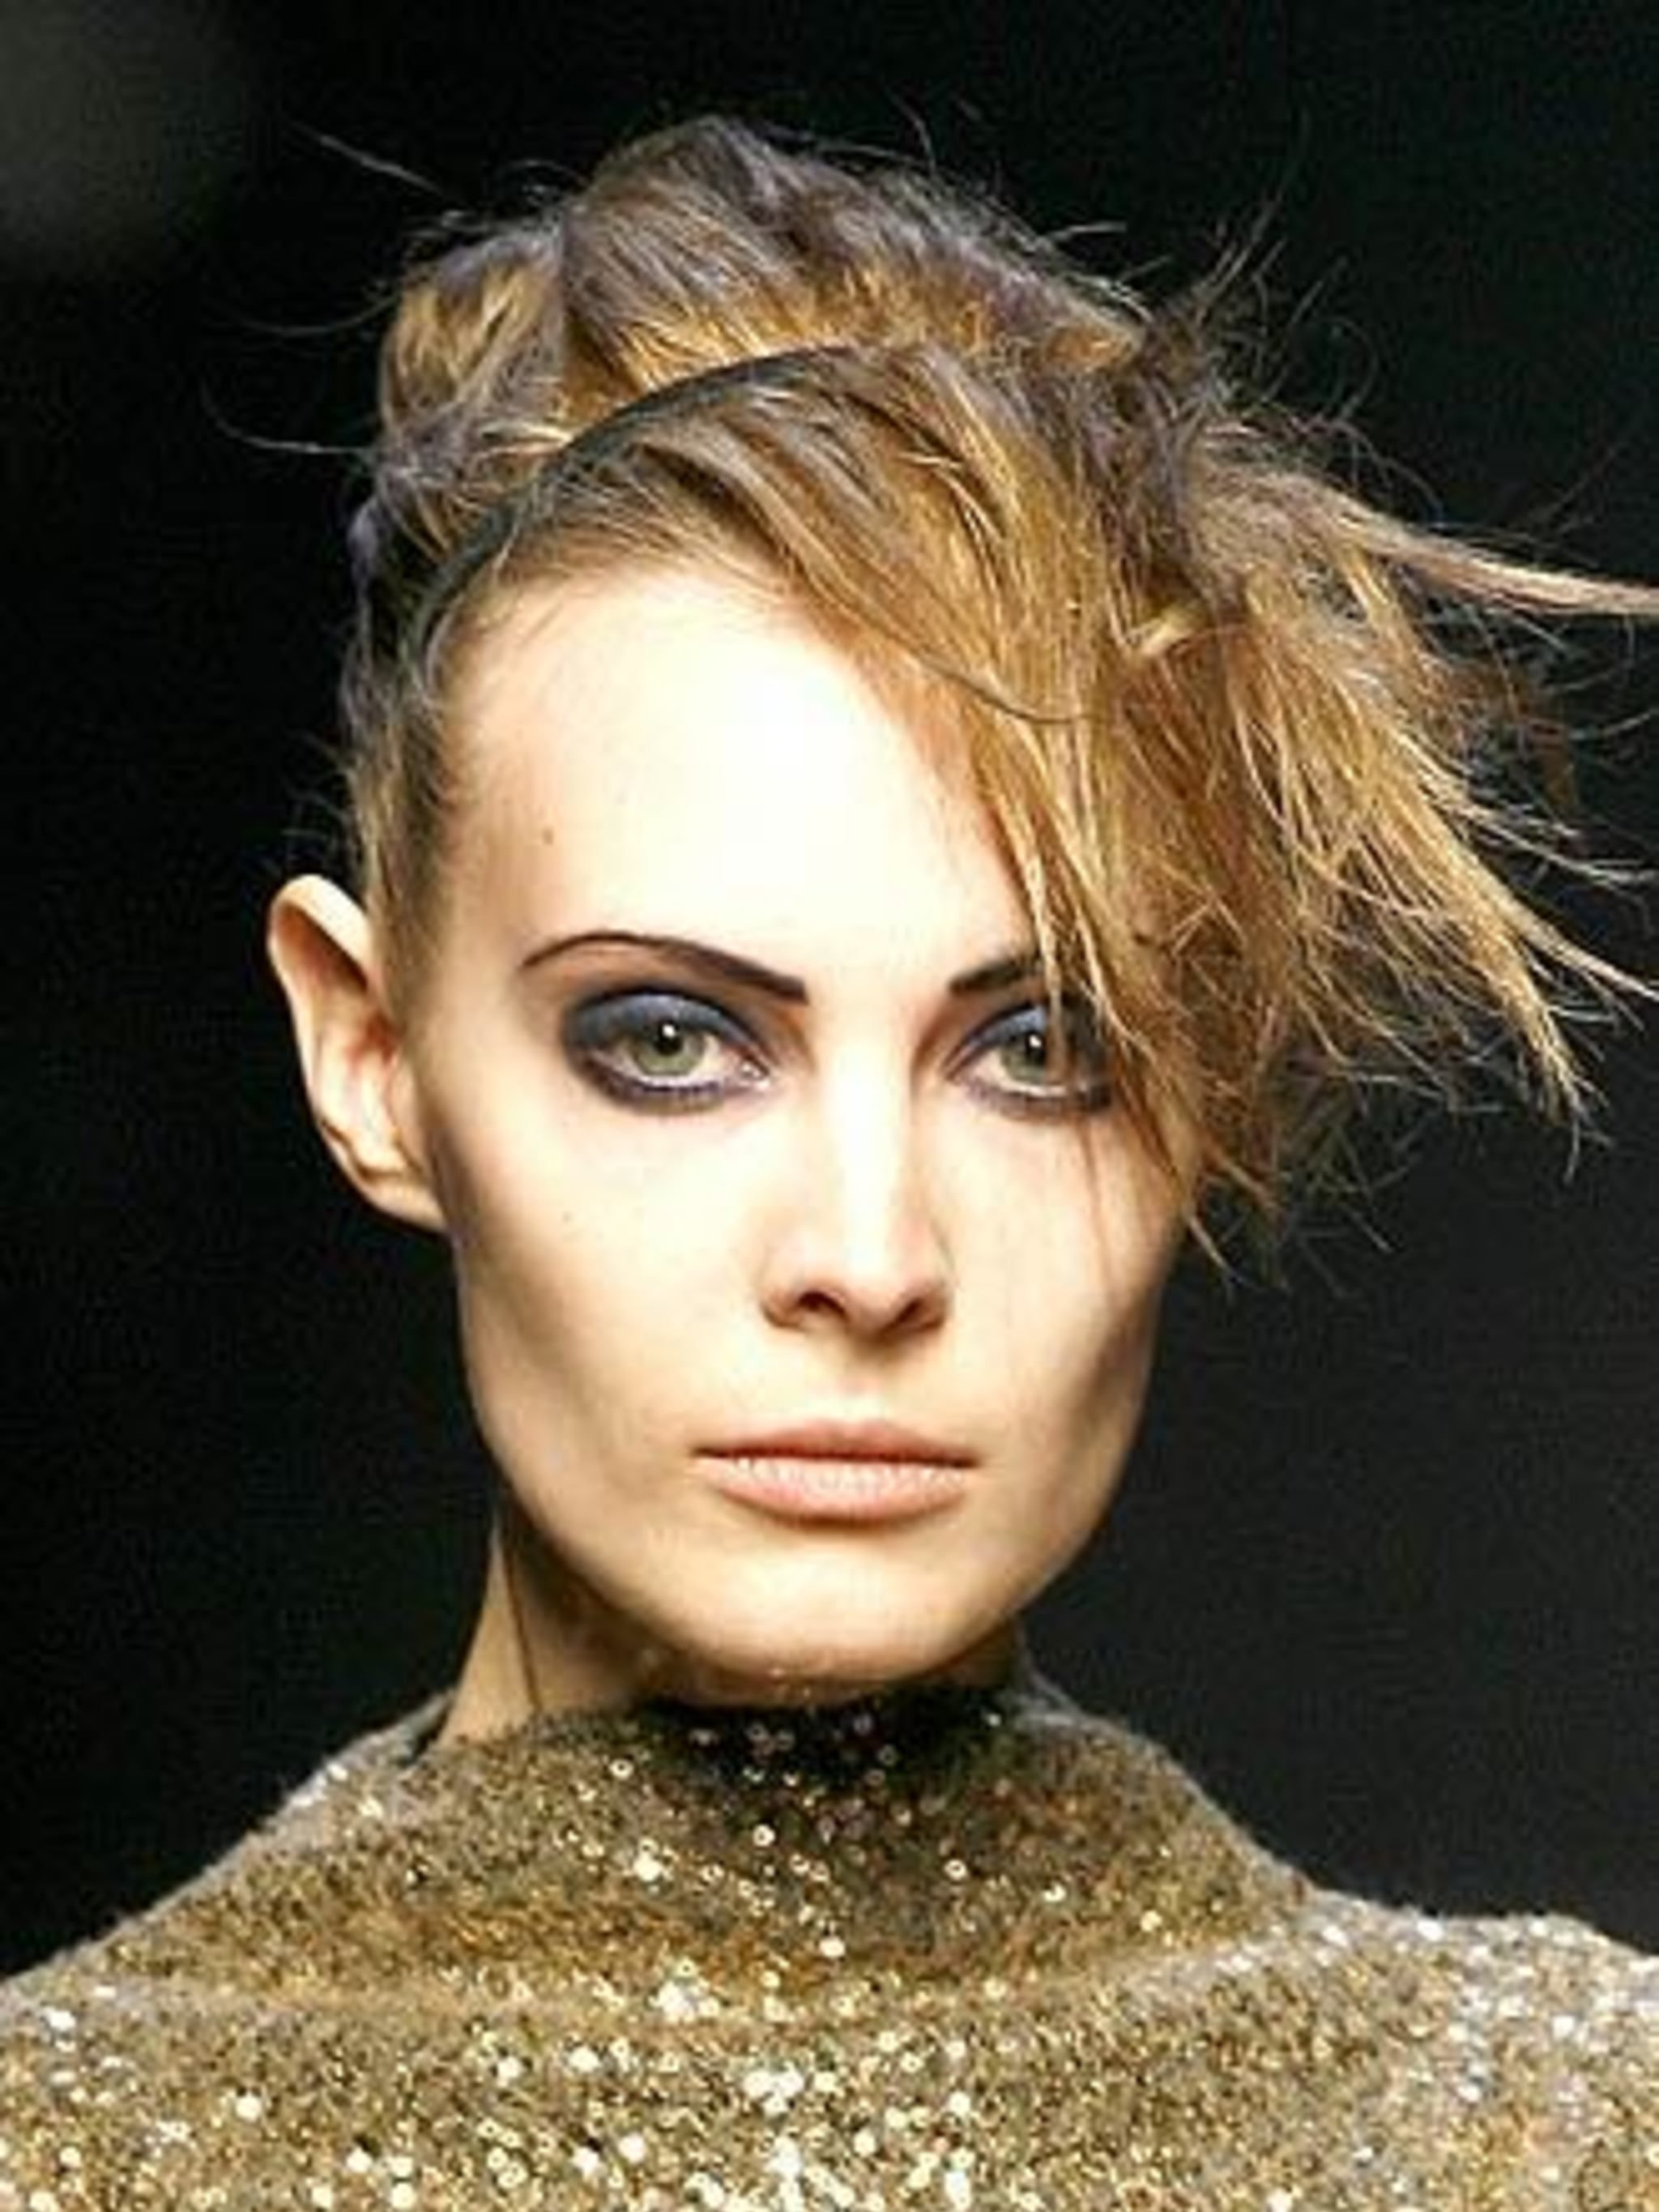 <p>Jewel eyesGemstones and precious metals inspired a host of different looks backstage this season. At Costume National CNC make-up artist Sally Branka injected elegance into a punky 'club kid' look with wet-look sapphire eyes, while at Prada an austere